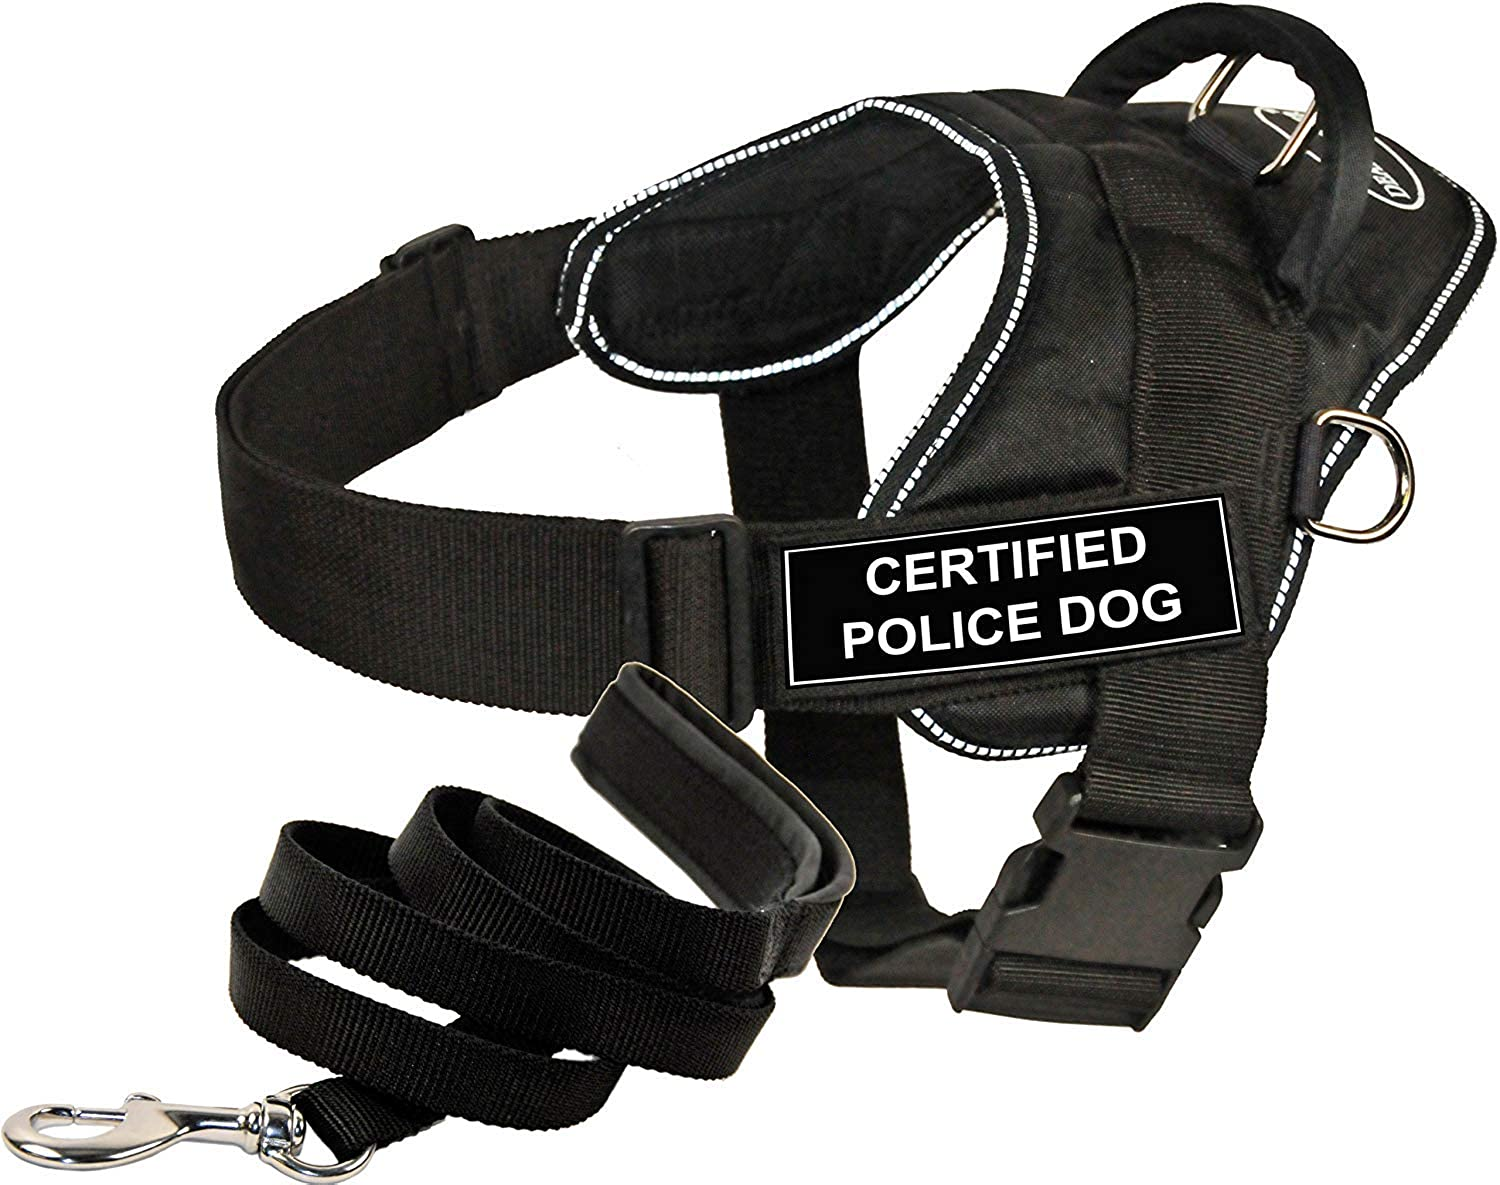 Dean and Tyler Bundle  One DT Fun Works  Harness, Certified Police Dog, Reflective, Small + One Padded Puppy  Leash, 6 FT Stainless Snap  Black